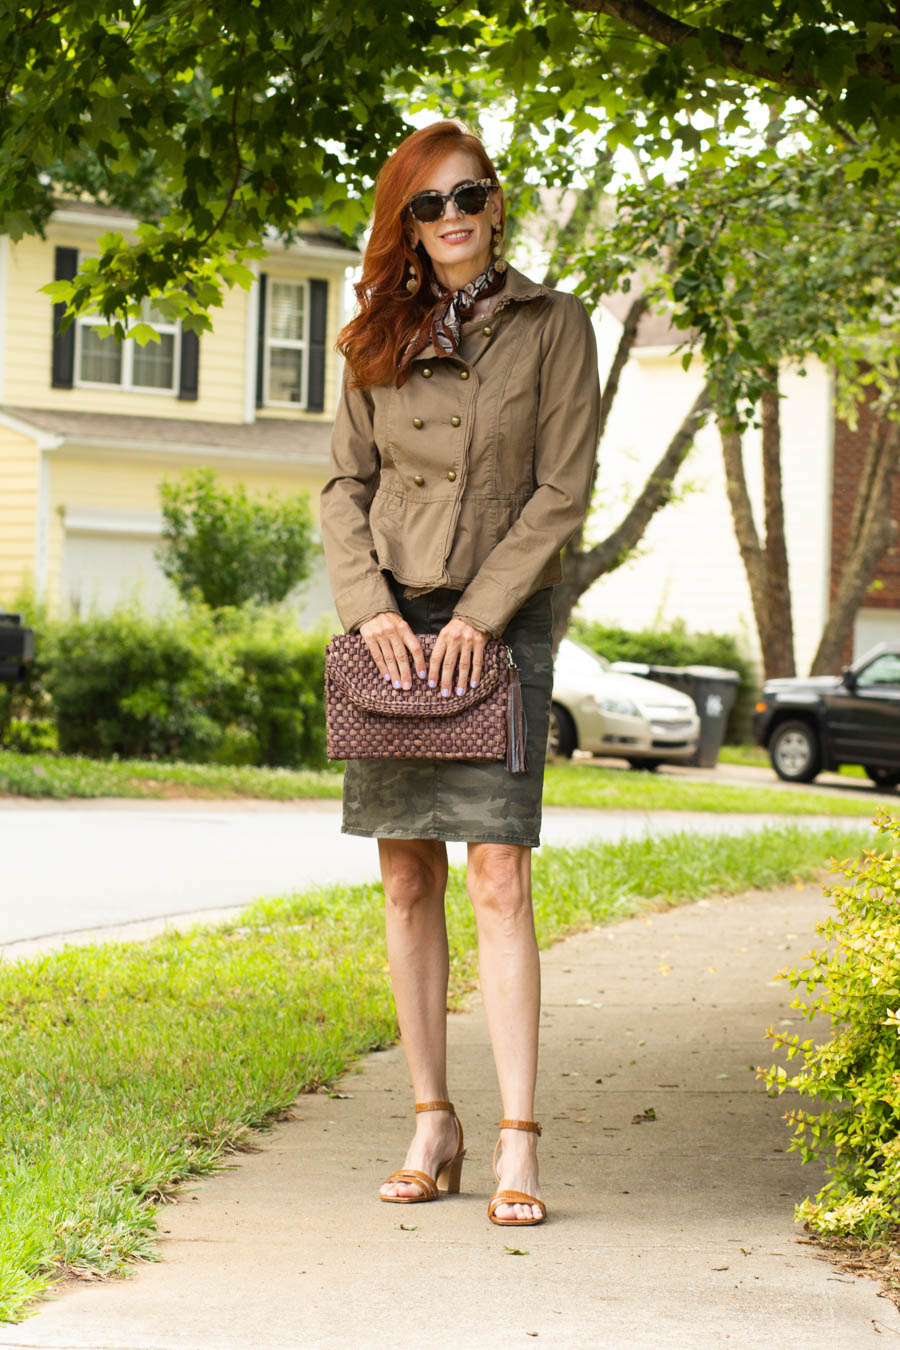 Camo skirt and military jacket with brown sandals